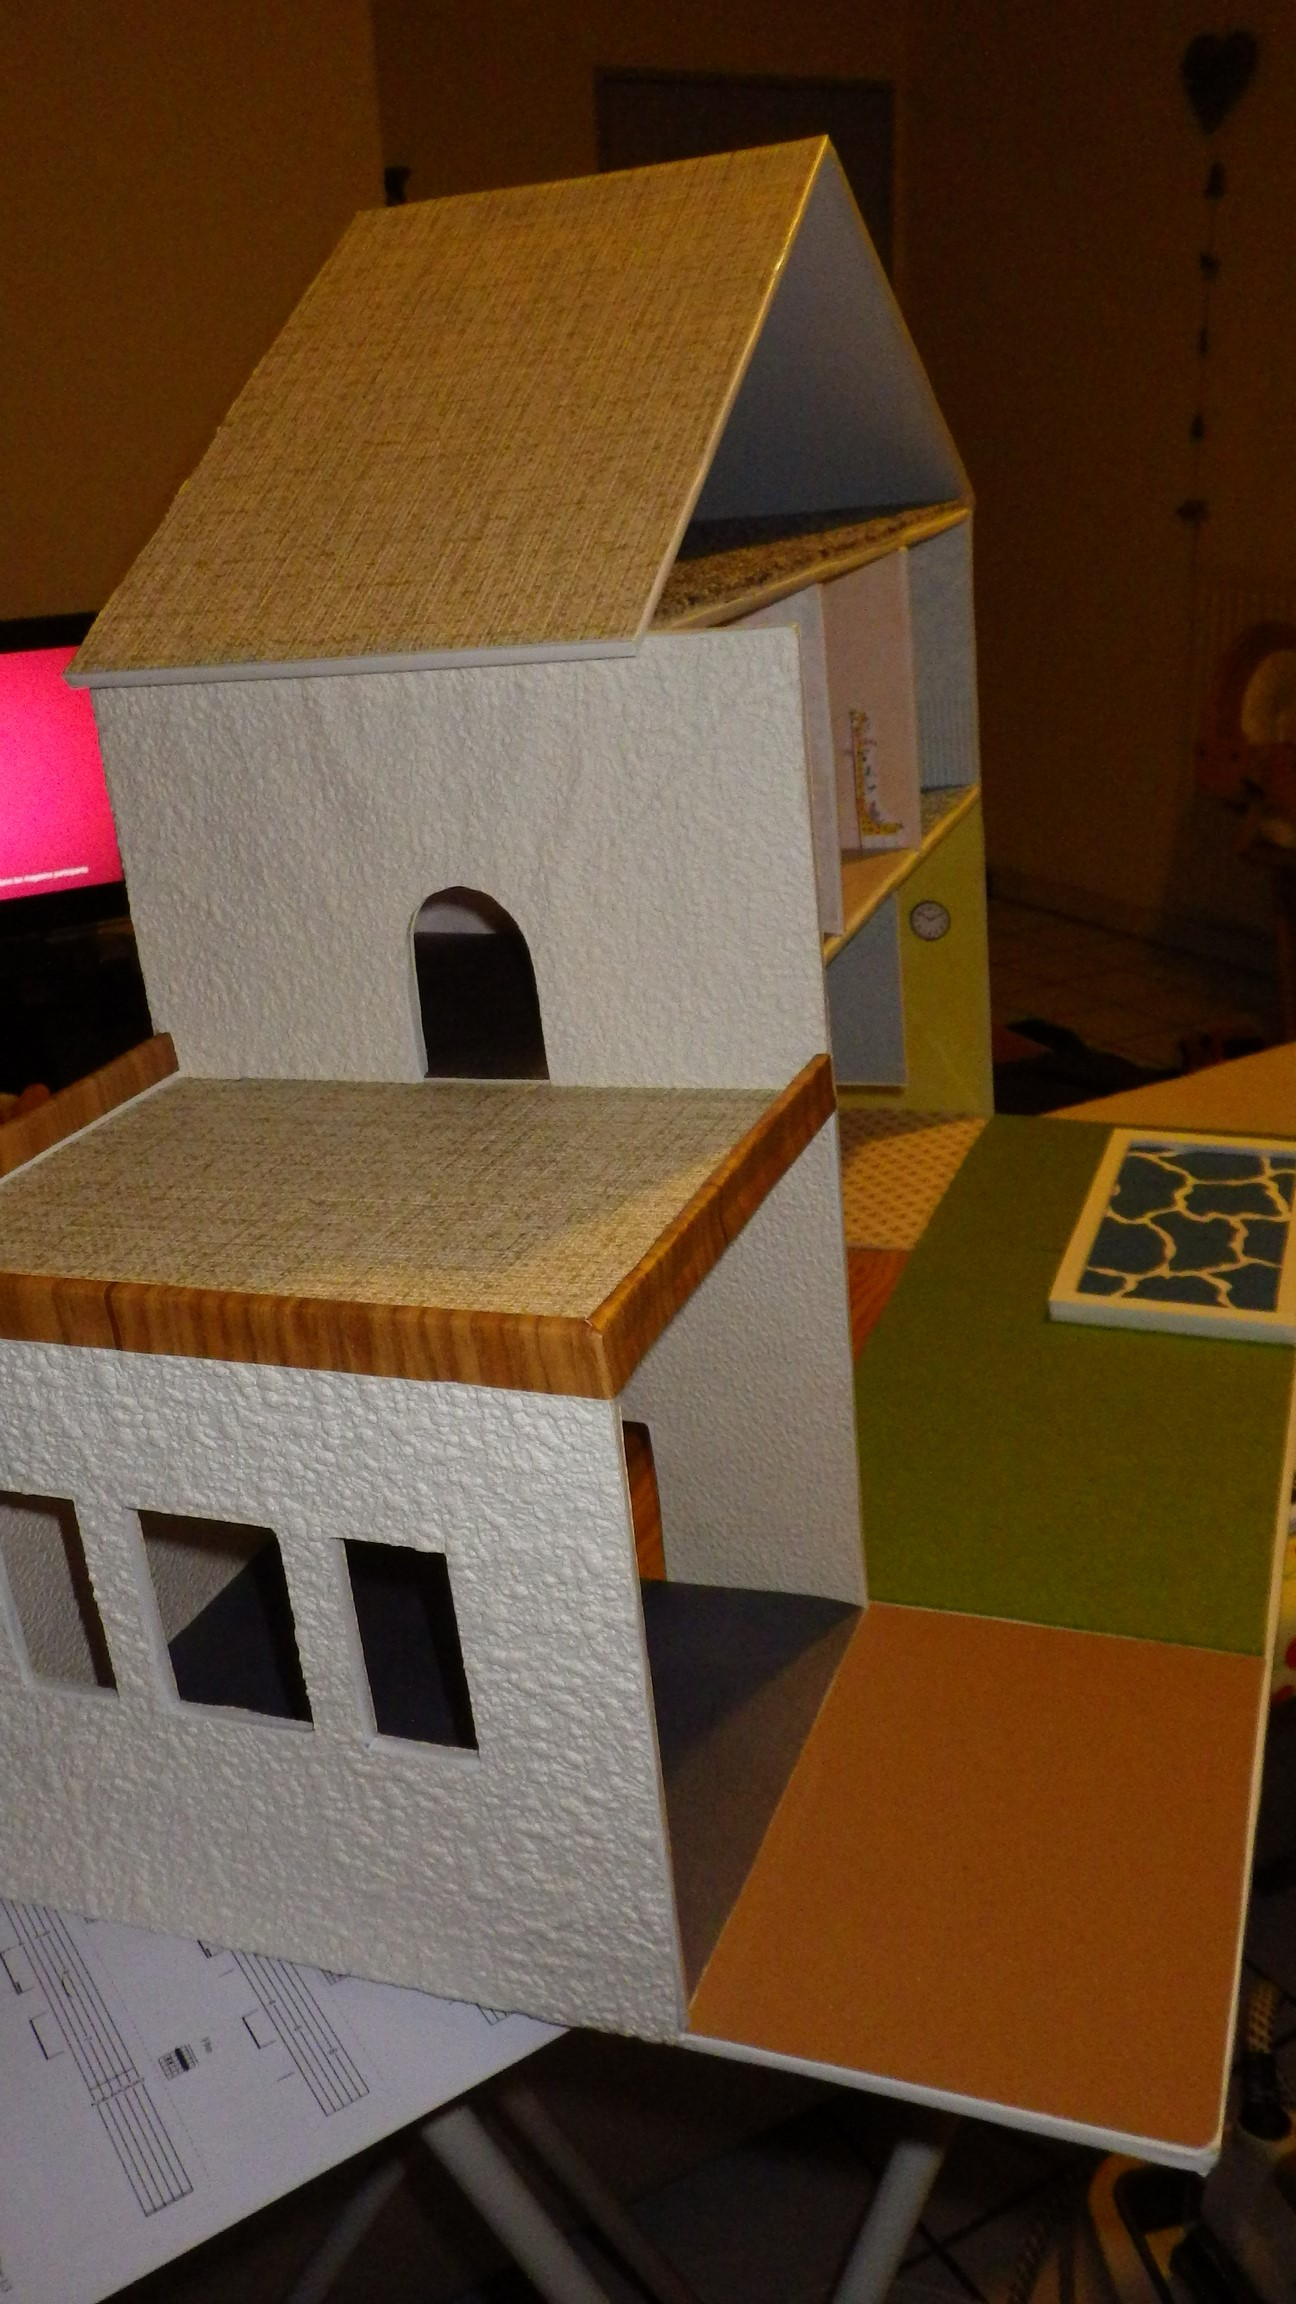 Comment faire une maison playmobil en carton simple with comment faire une maison playmobil en - Comment faire une maison en carton ...